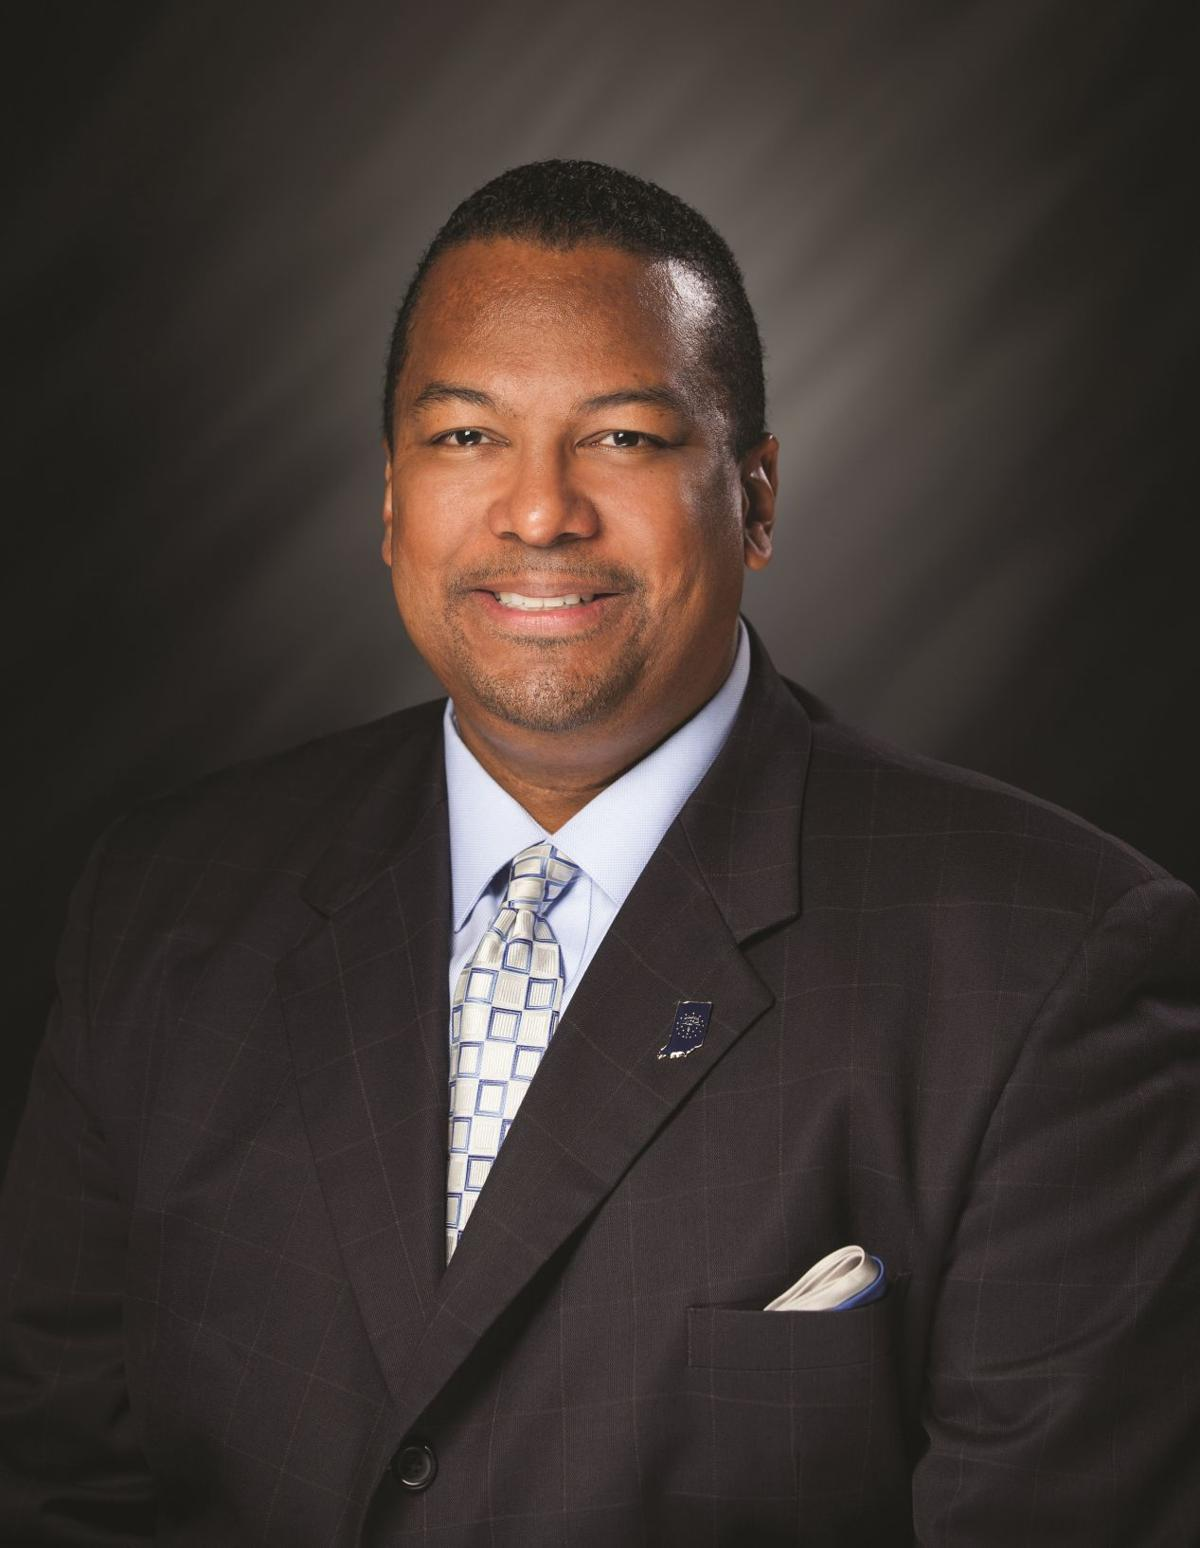 State Rep. Earl Harris Jr., D-East Chicago